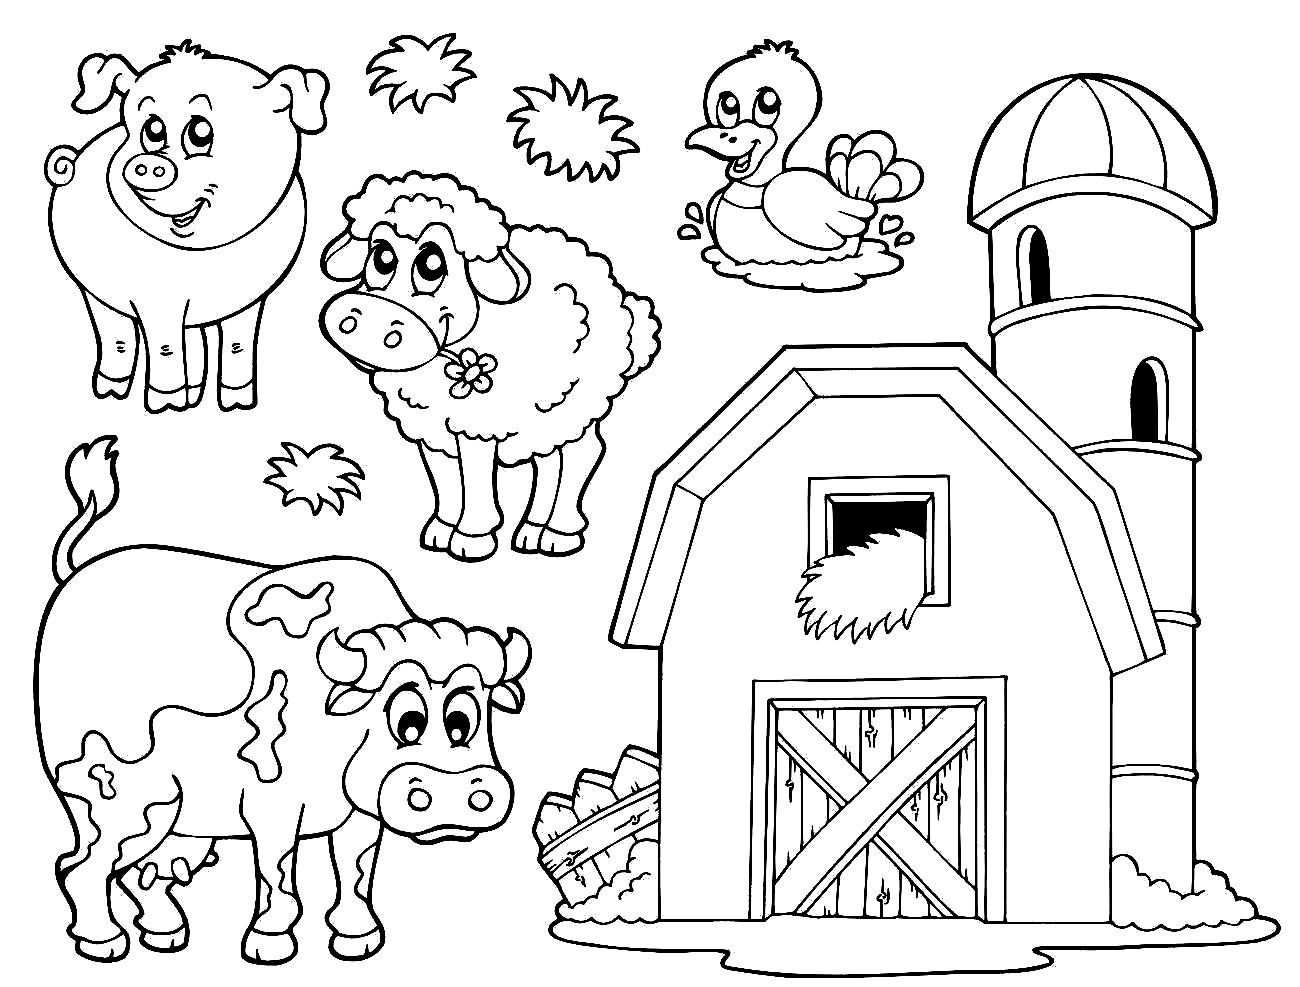 Printable Coloring Pages Of Farm Animals